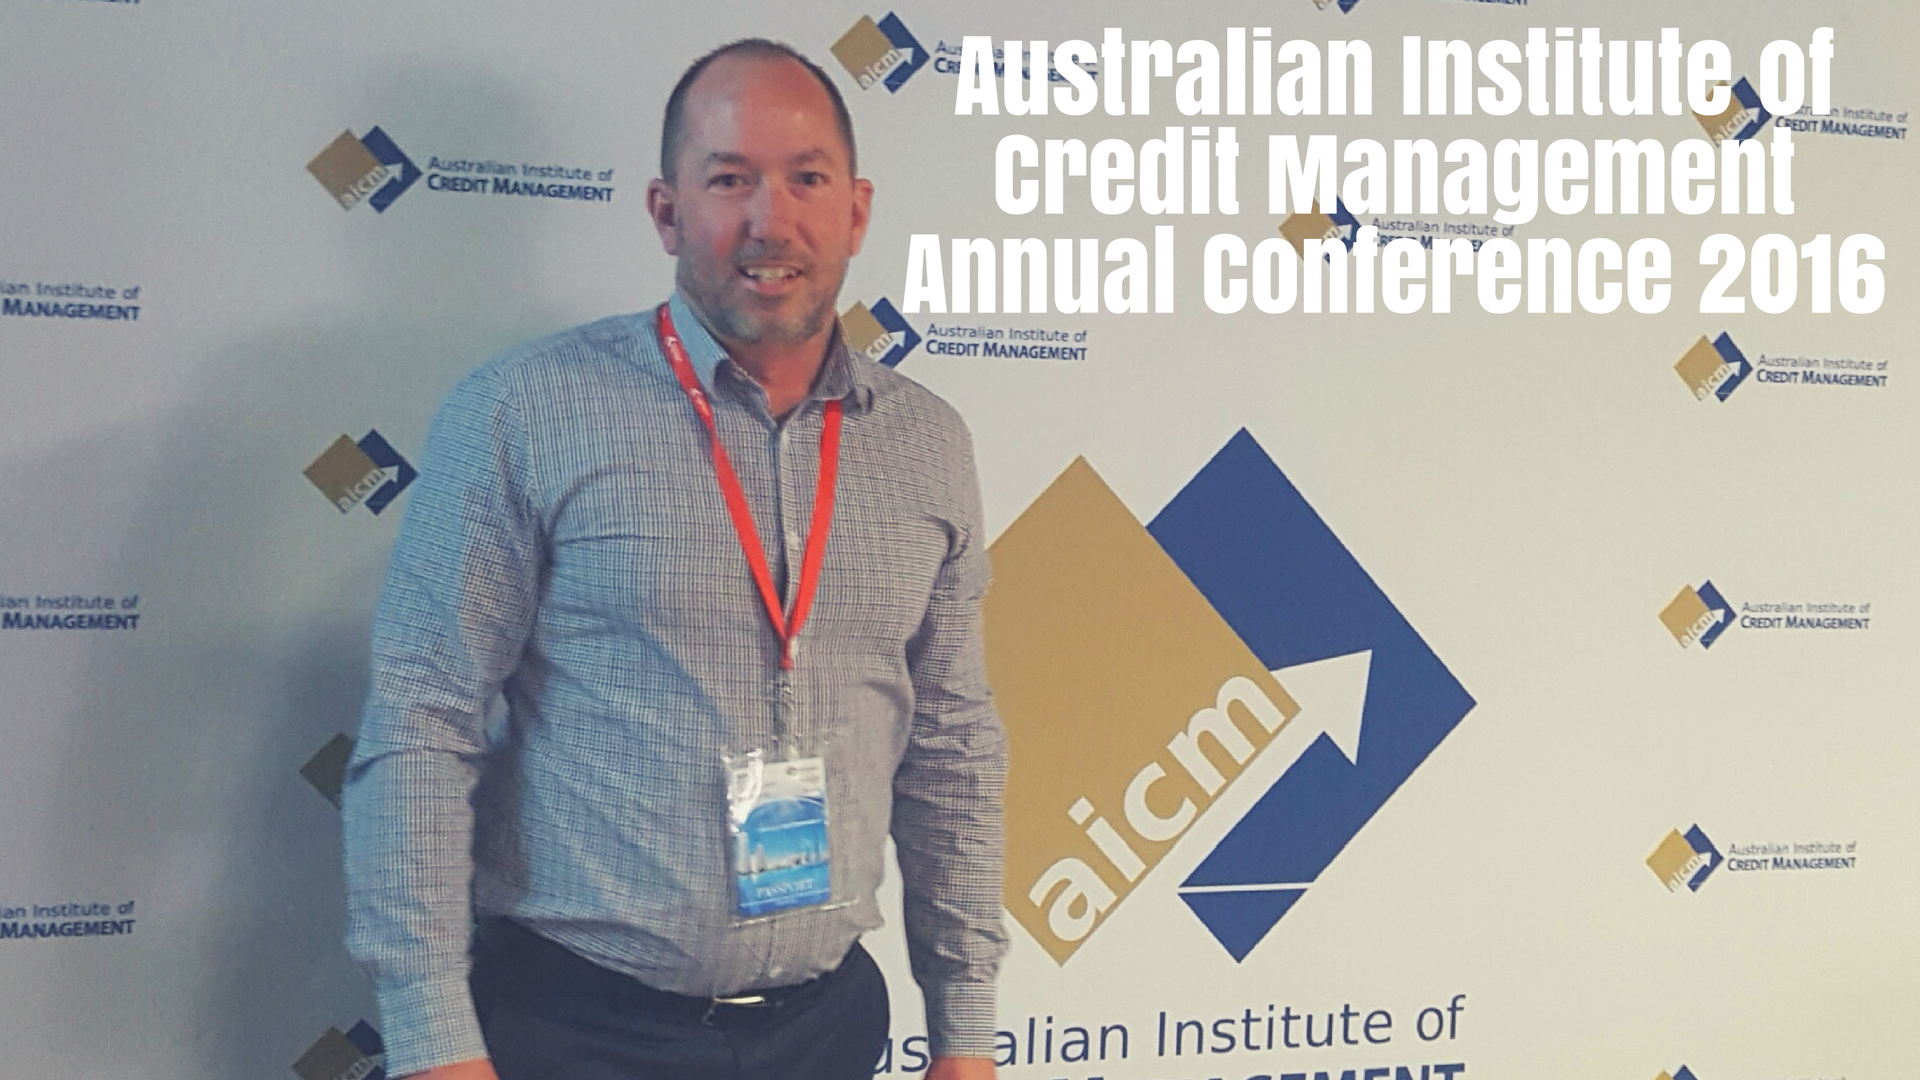 Australian Institute of Credit Management Annual Conference 2016